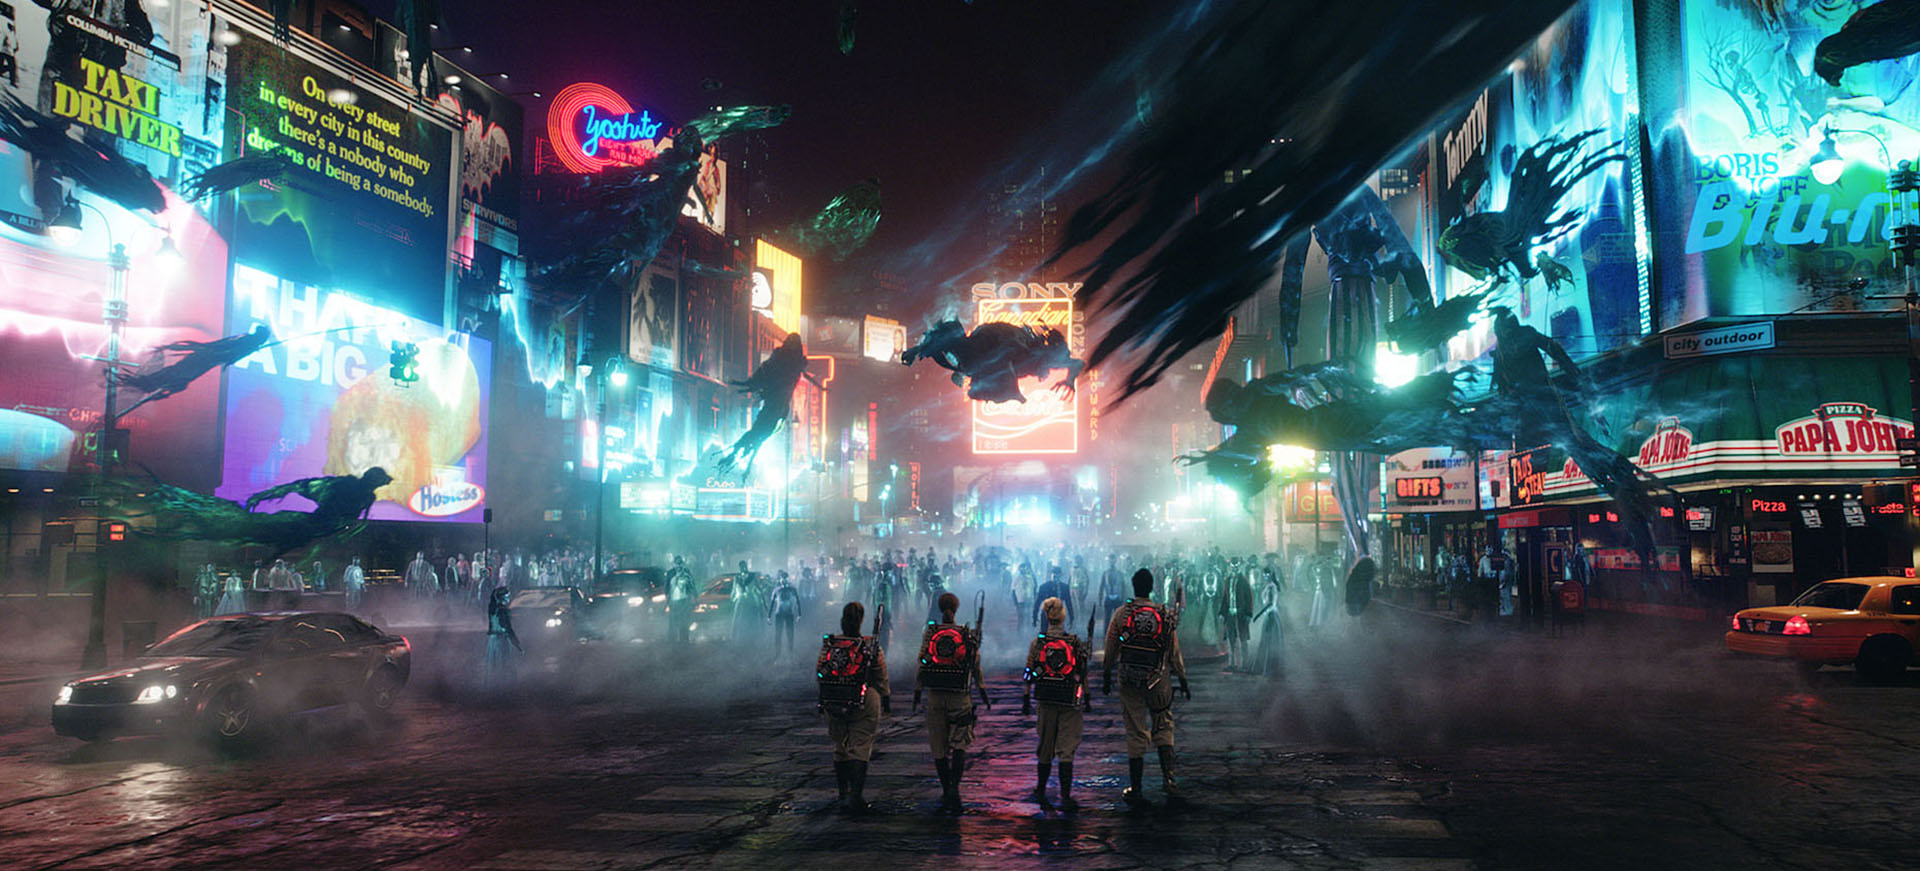 Ghostbusters 2016 - Times Square Battle